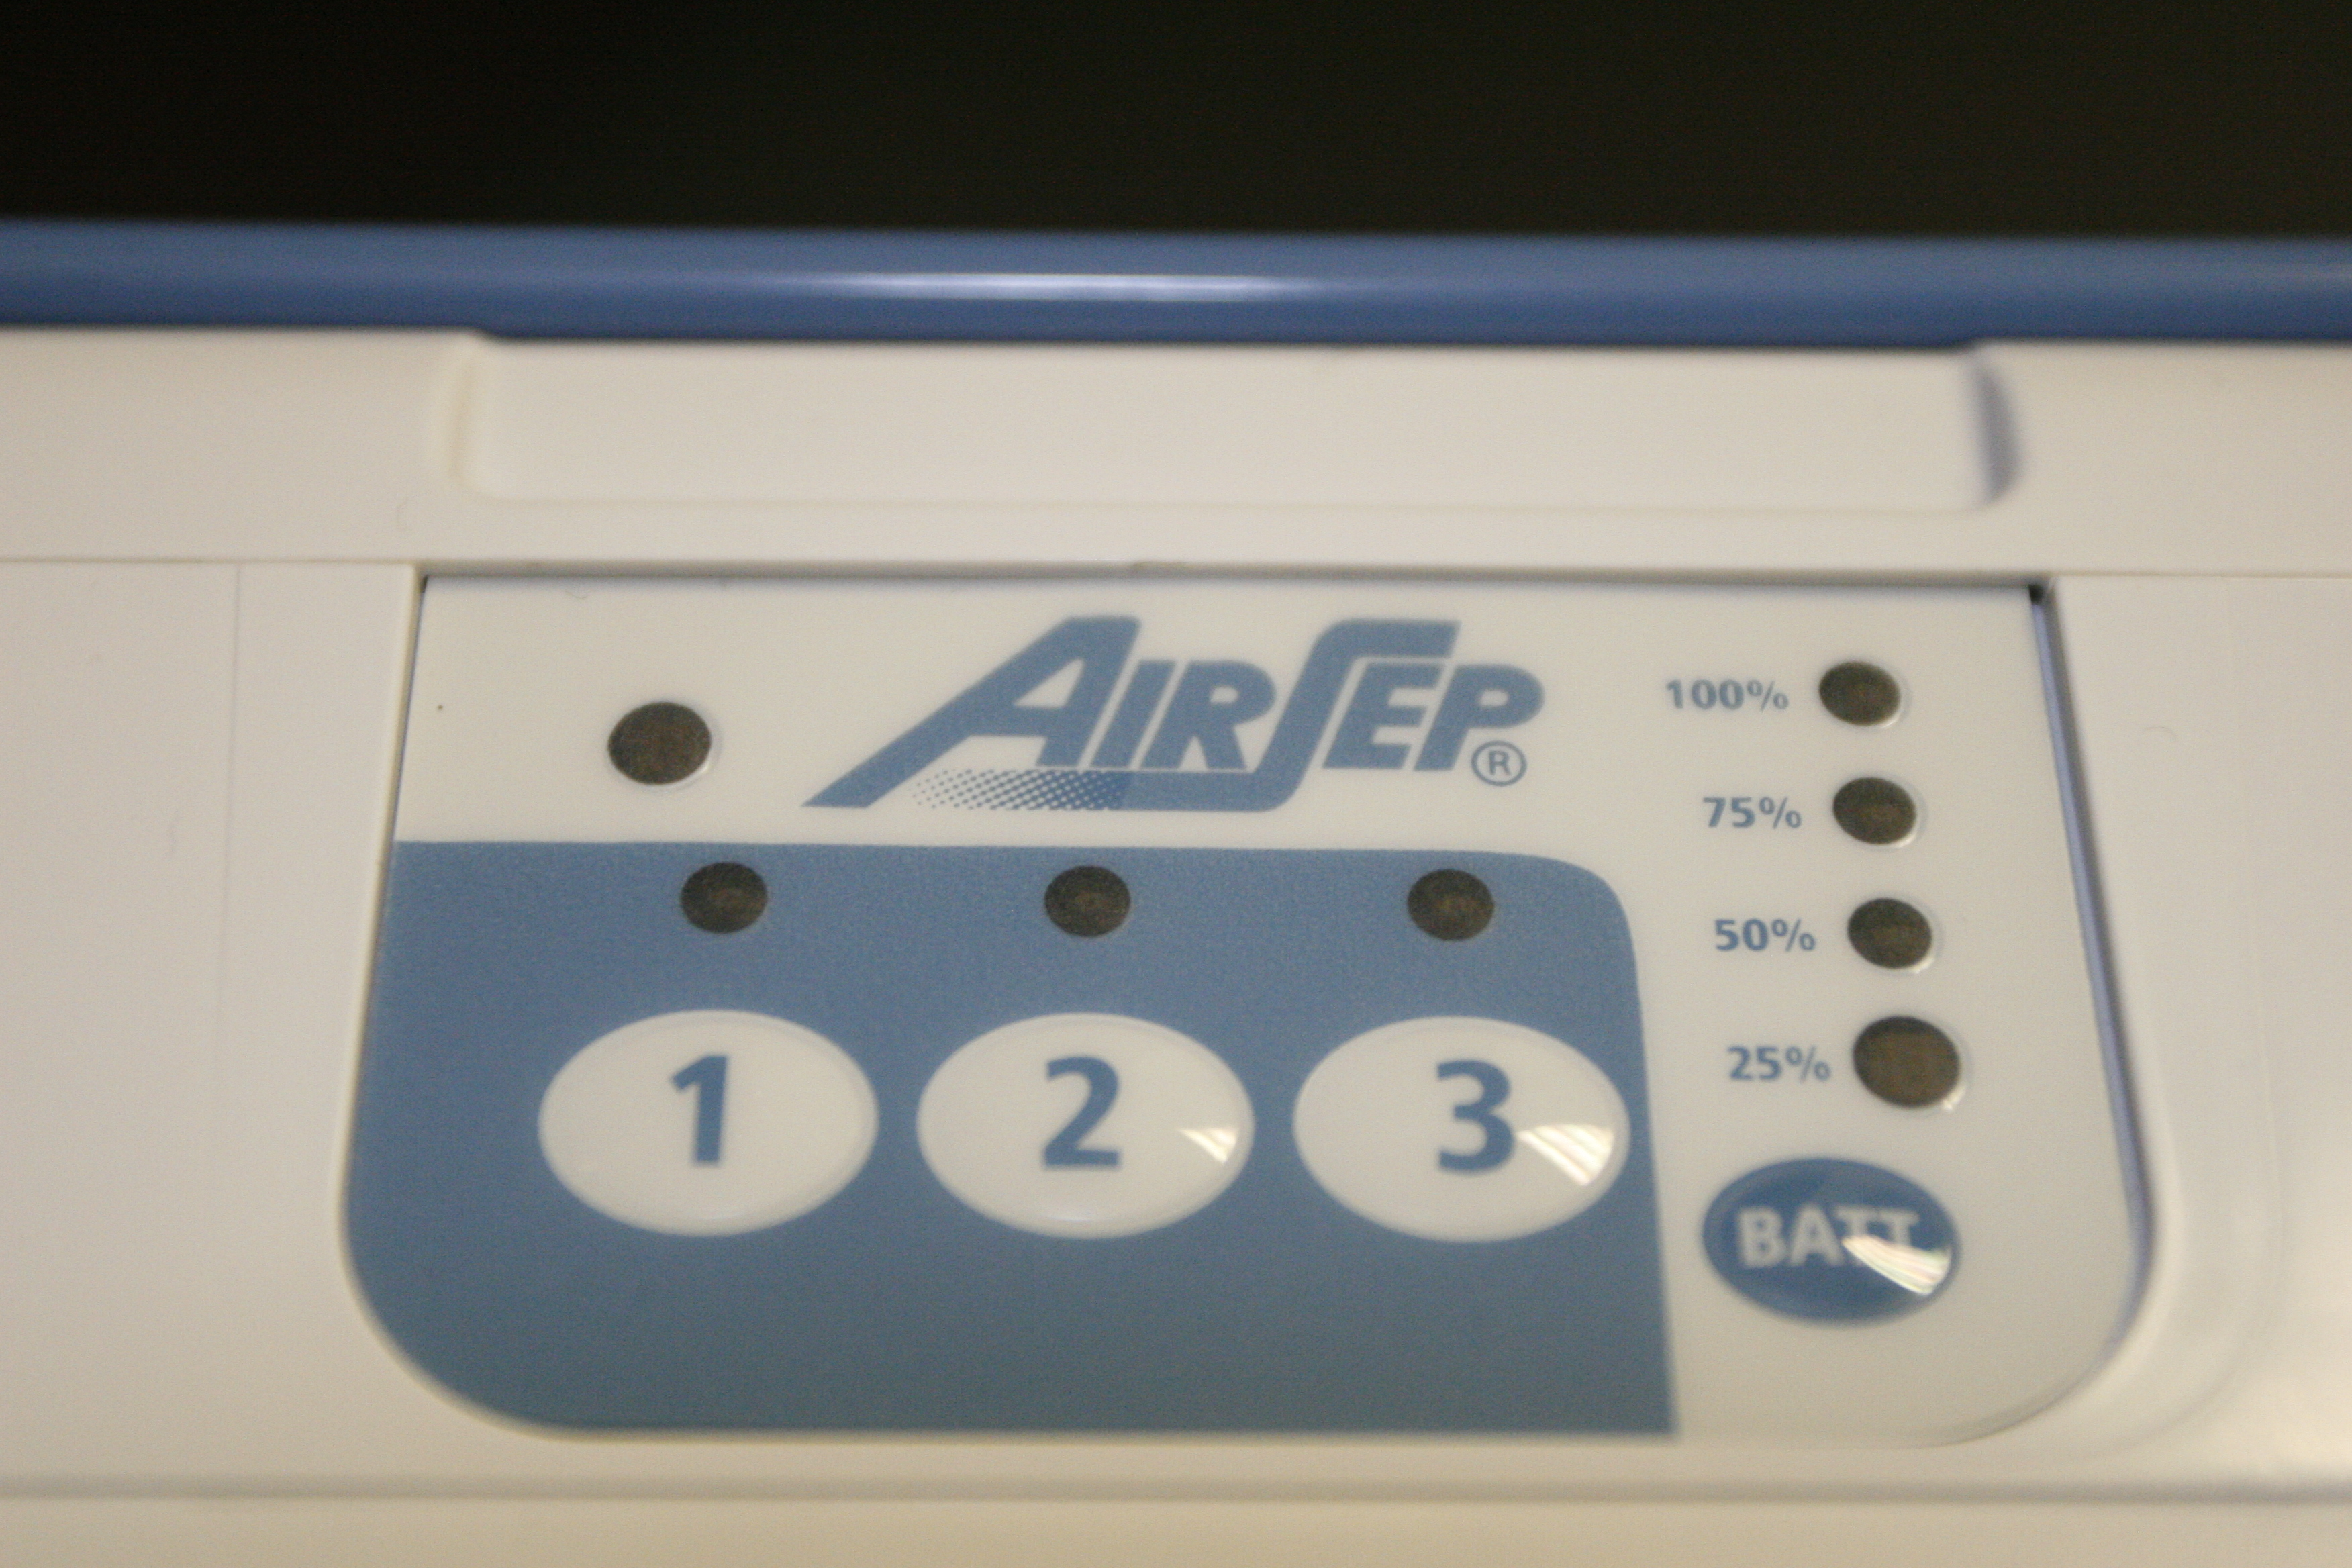 AirSep FreeStyle 3 Control Panel